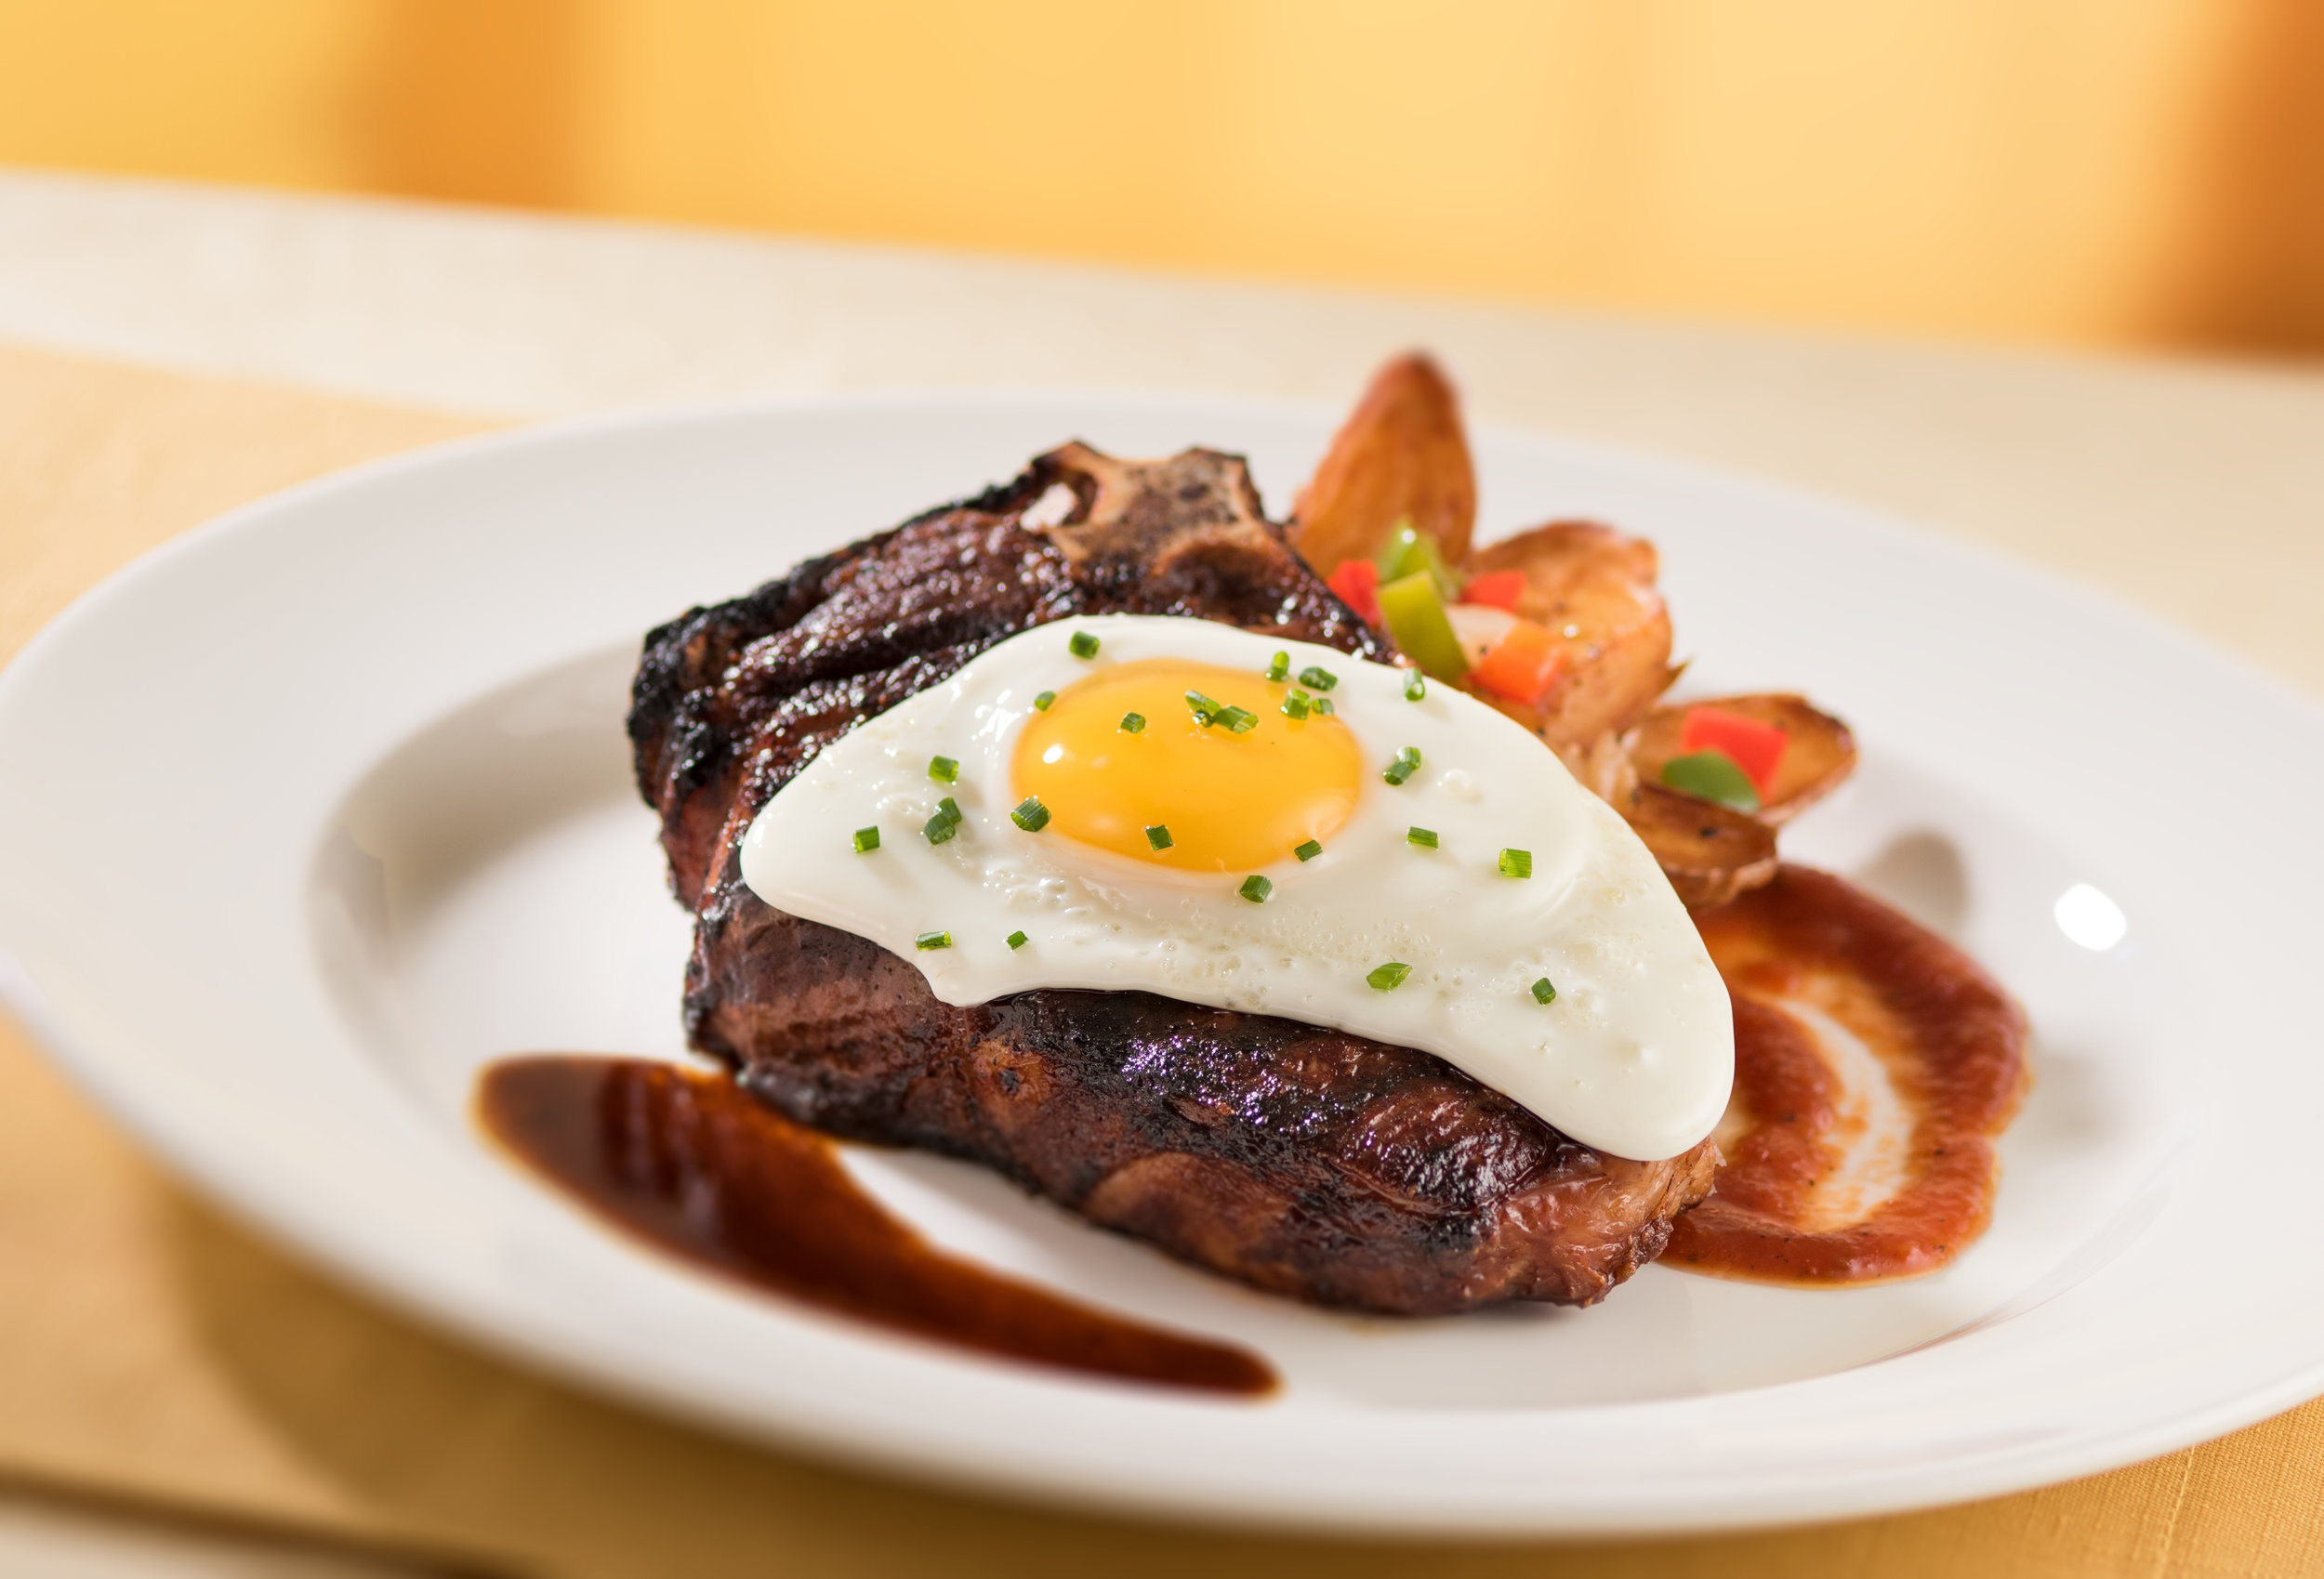 Capital Grille's bone-in dry-aged New York strip with fried egg, Lyonnaise potatoes and red jus